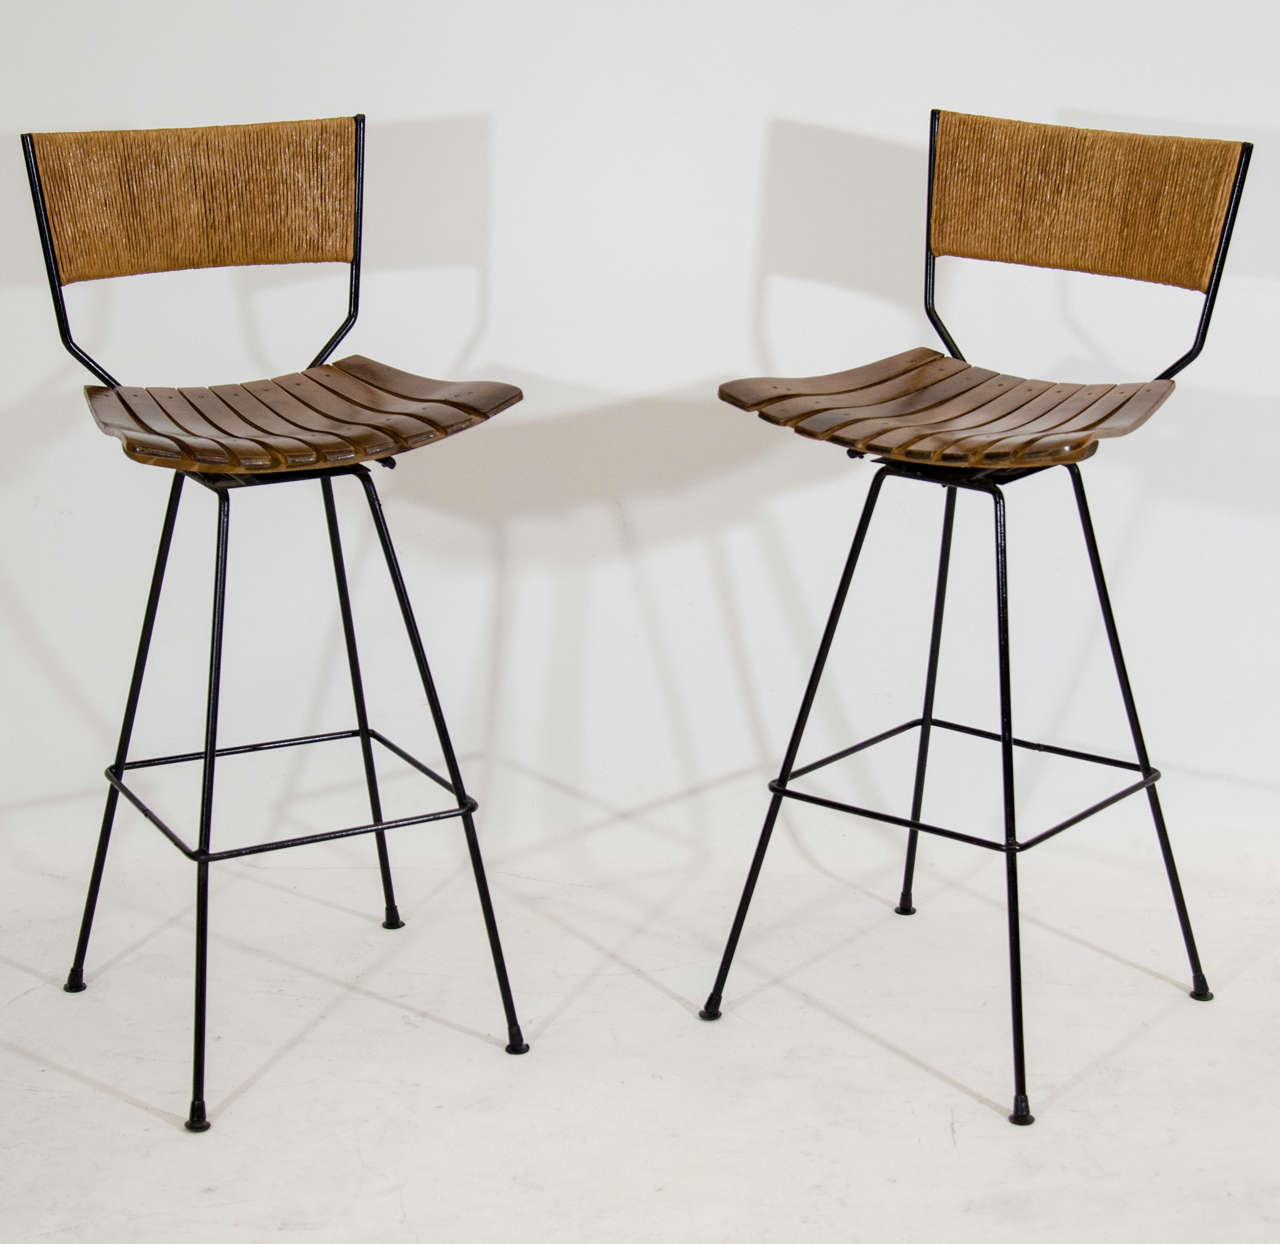 About Barstools On Pinterest Bar Stools Stools And Diy Bar Stools. Full resolution  image, nominally Width 1280 Height 1244 pixels, image with #6F4A24.